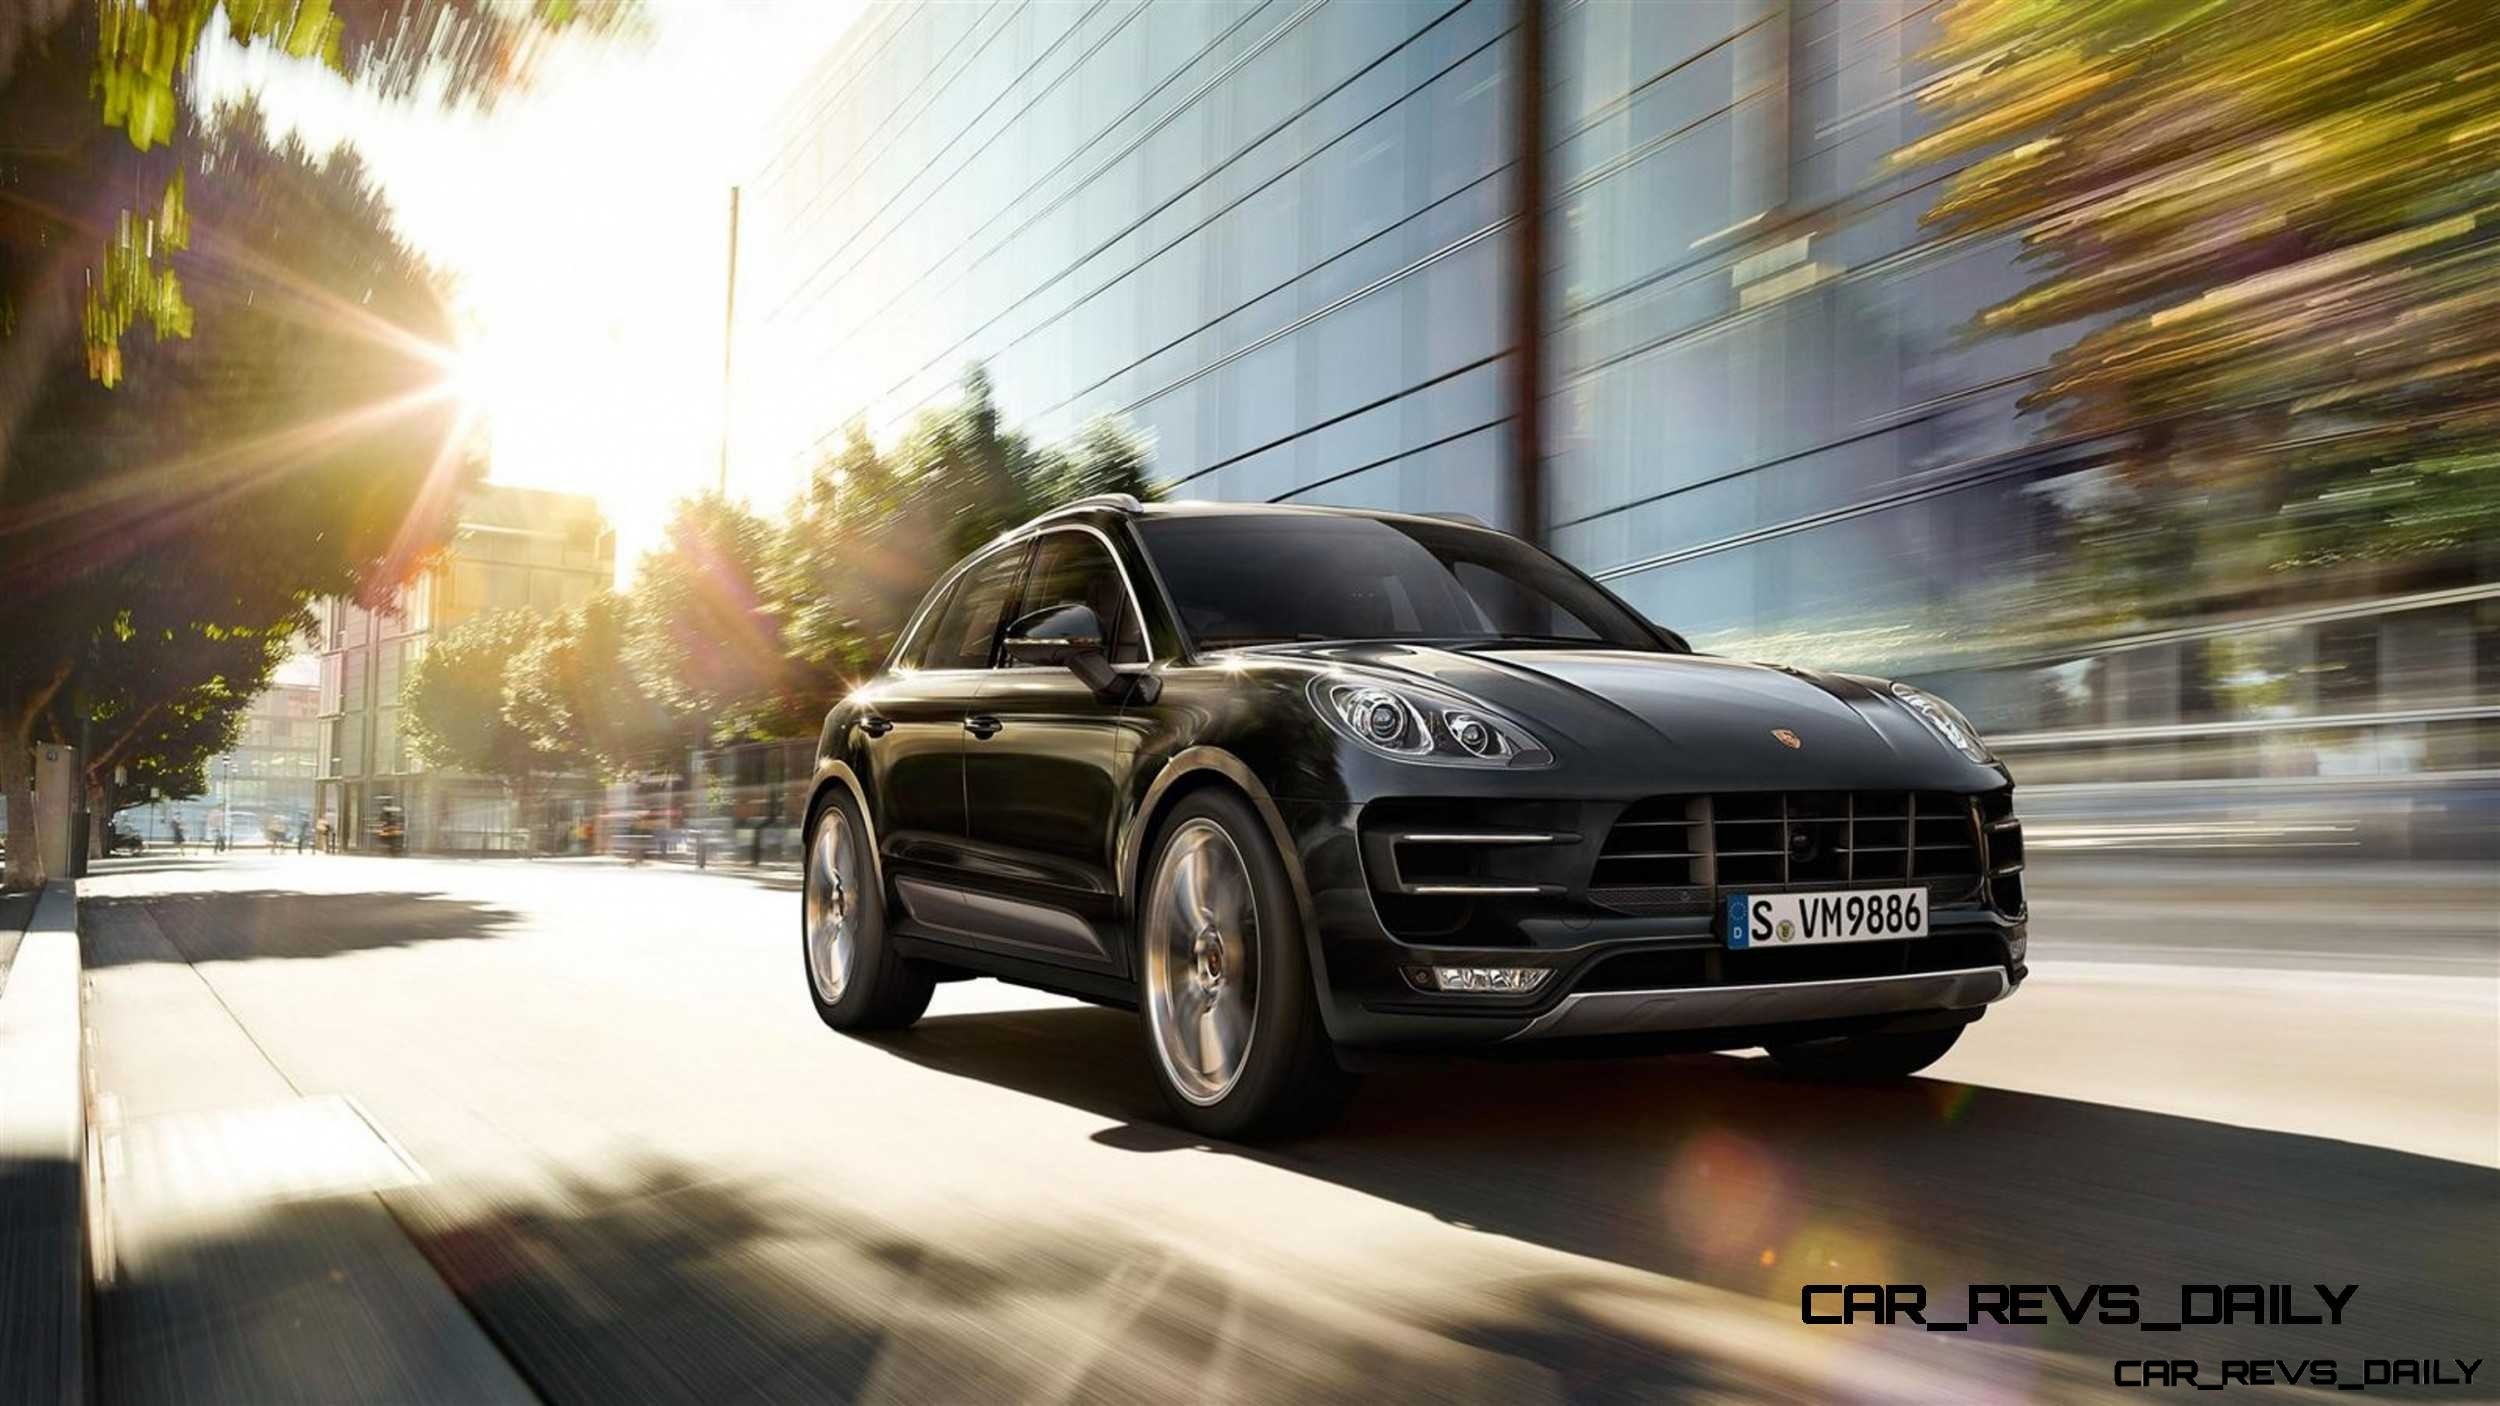 2015 Porsche Macan - Latest Images - CarRevsDaily.com 25